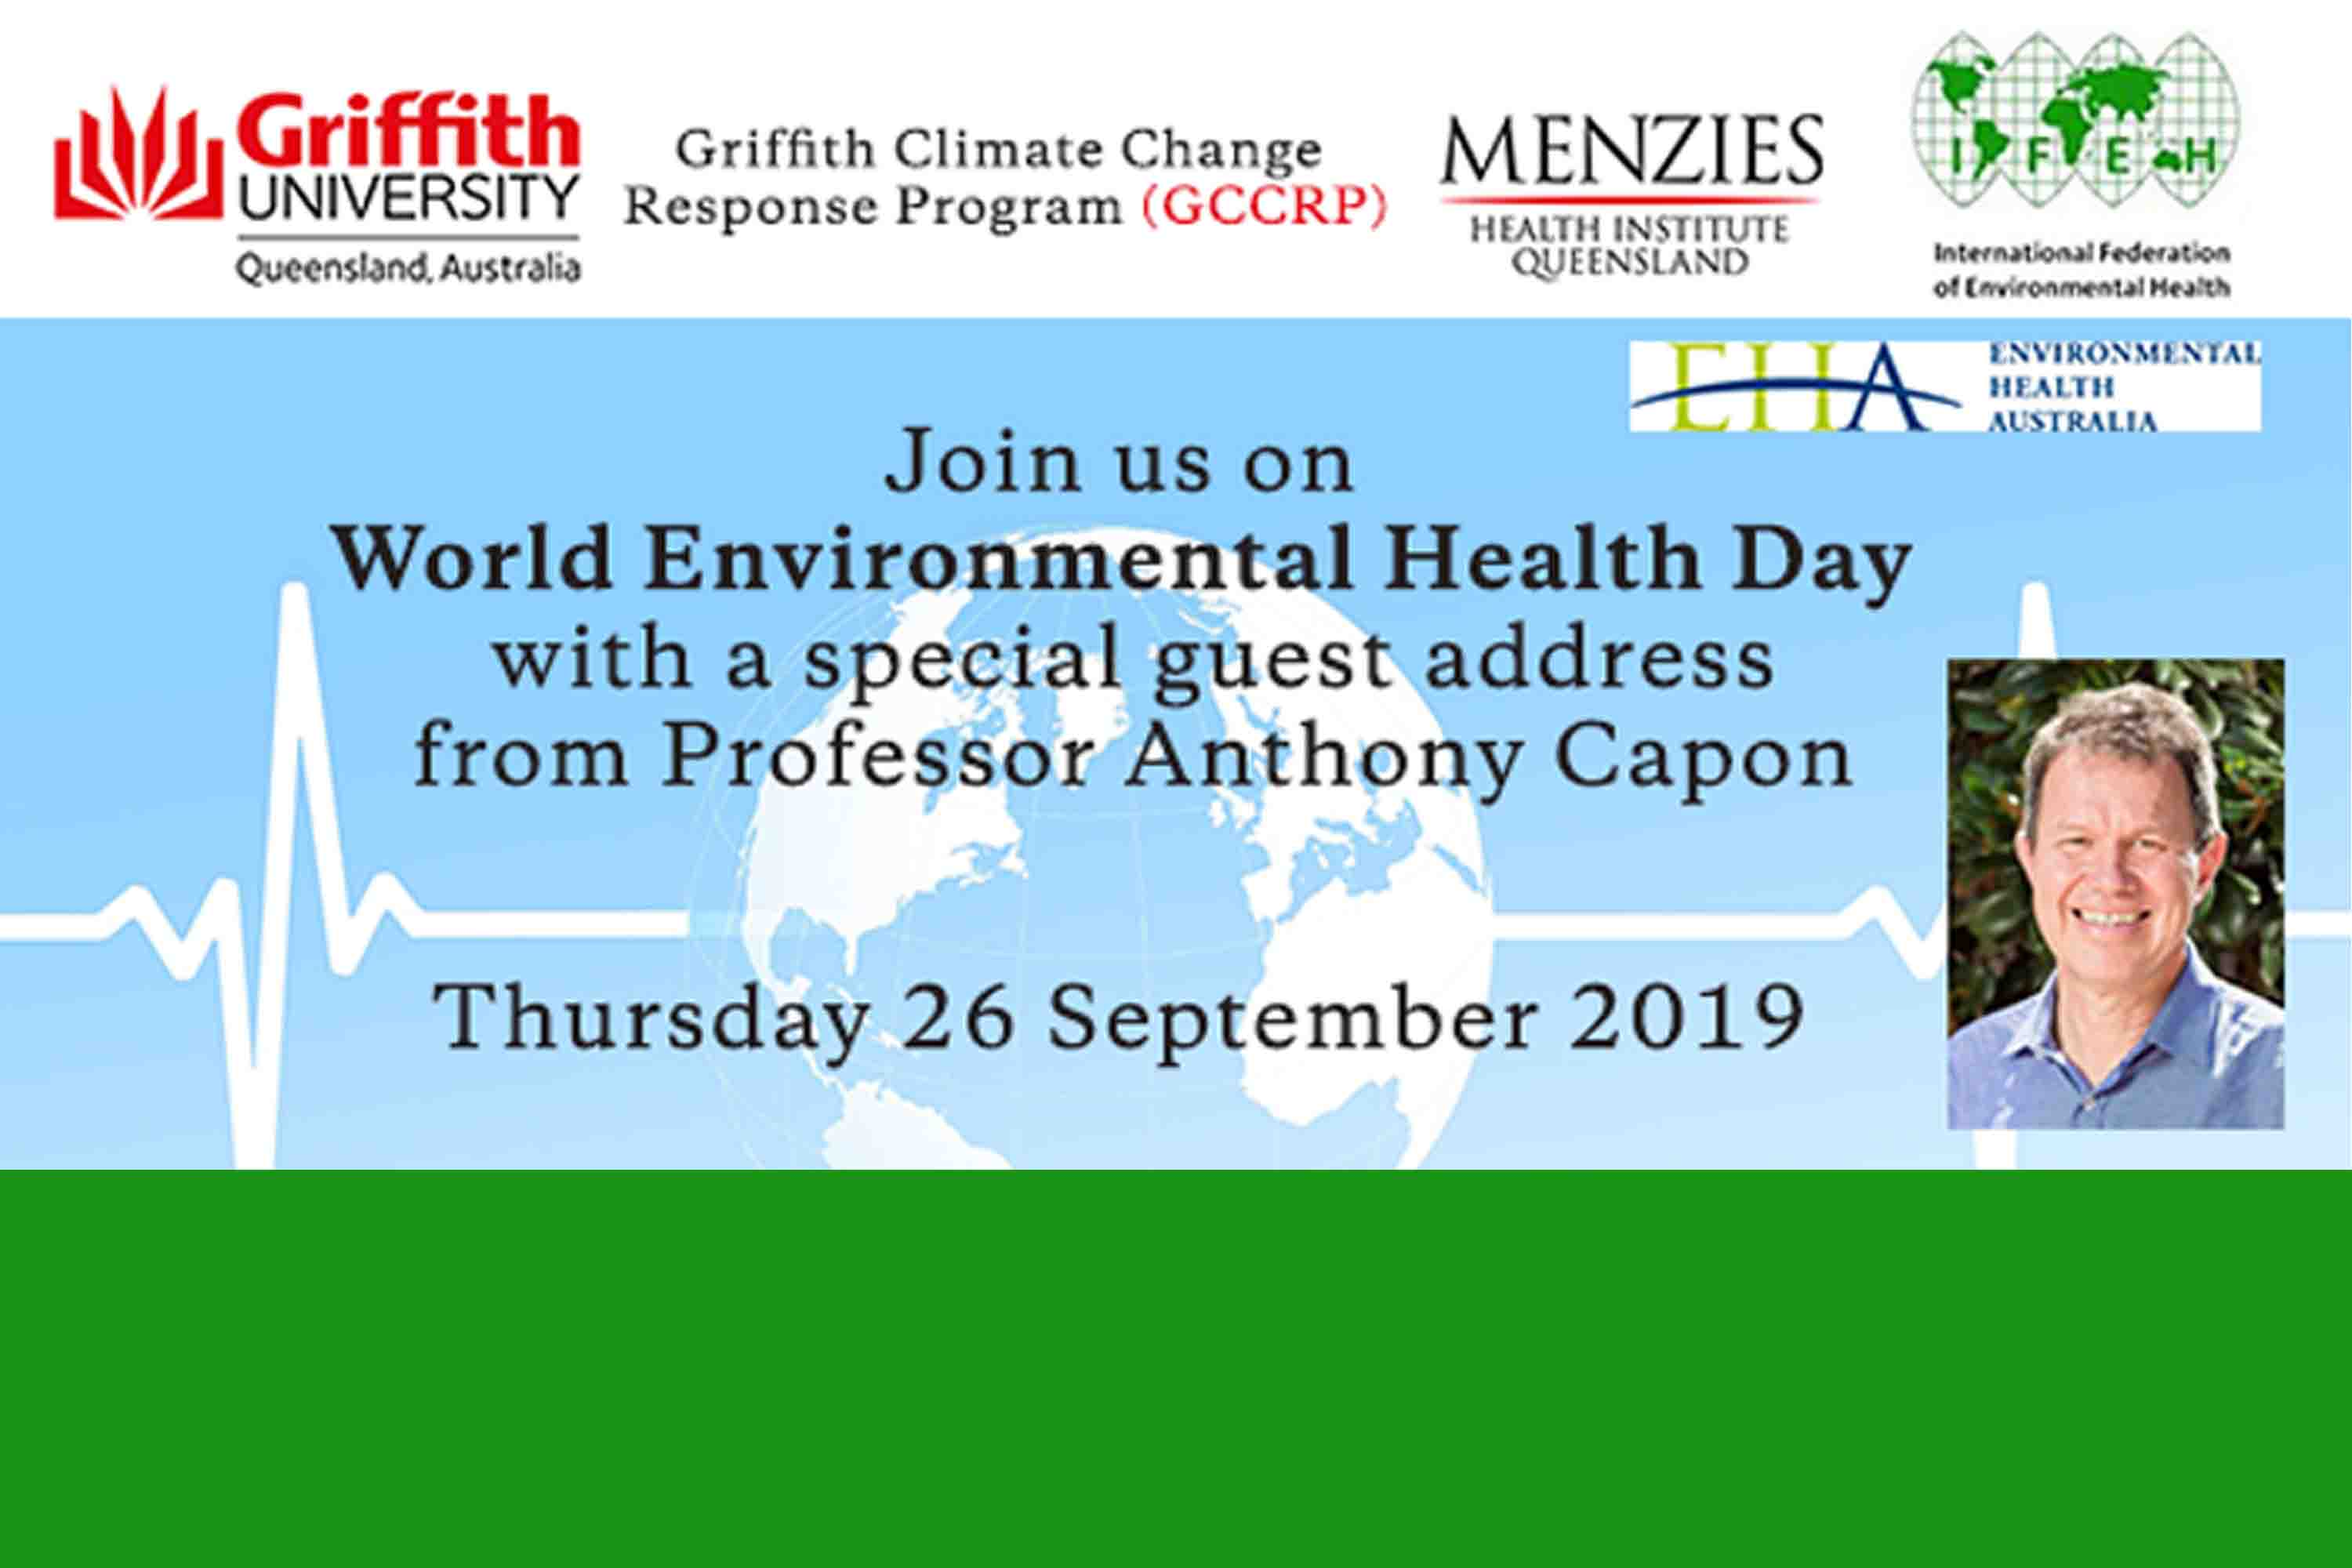 World Environmental Health Day - special address from guest, Prof Anthony Capon - Planetary Heath: Safeguarding human health in the Anthropocene epoch